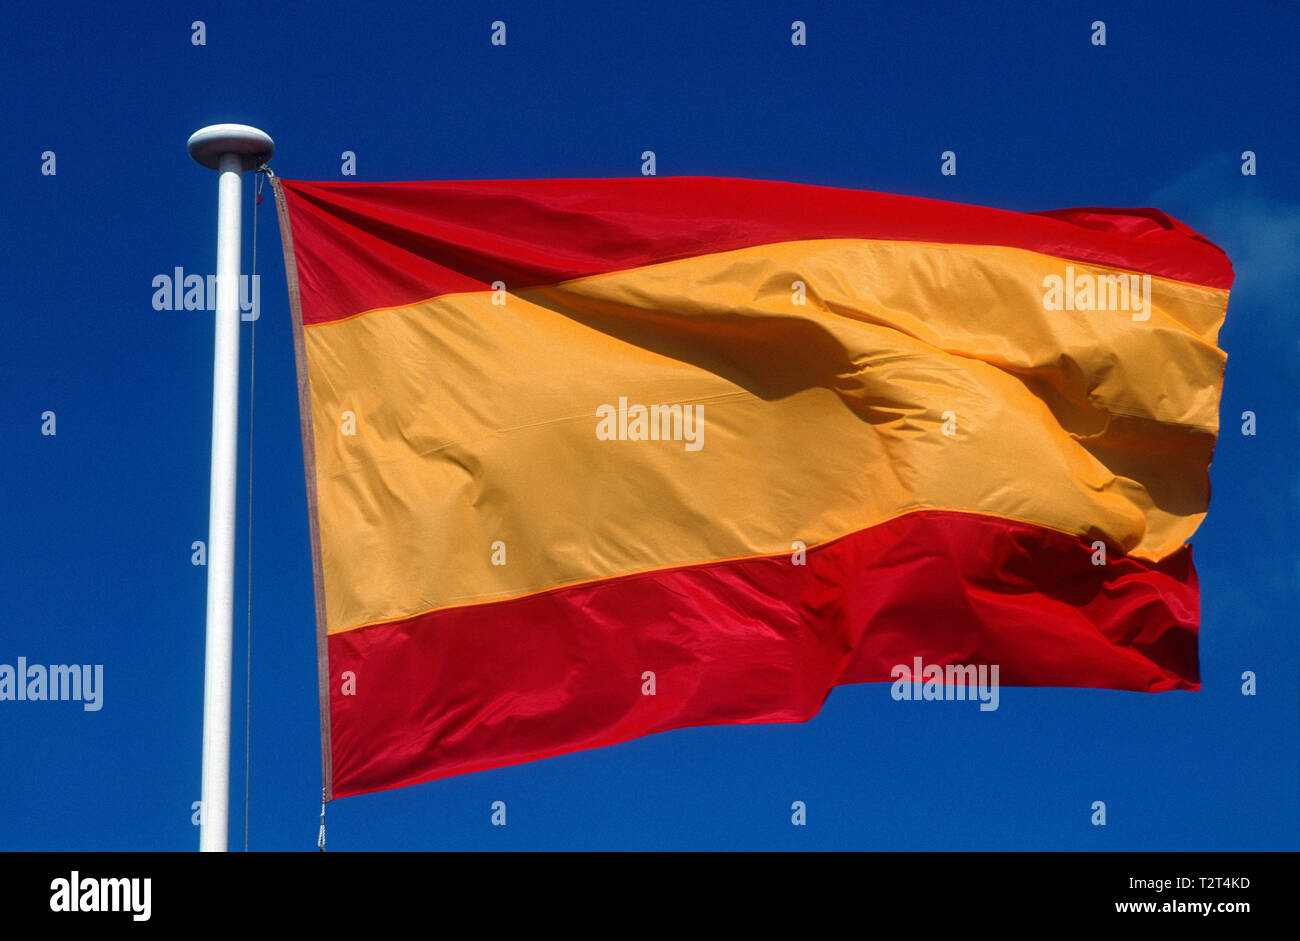 Spanish flag waving in the wind - Stock Image